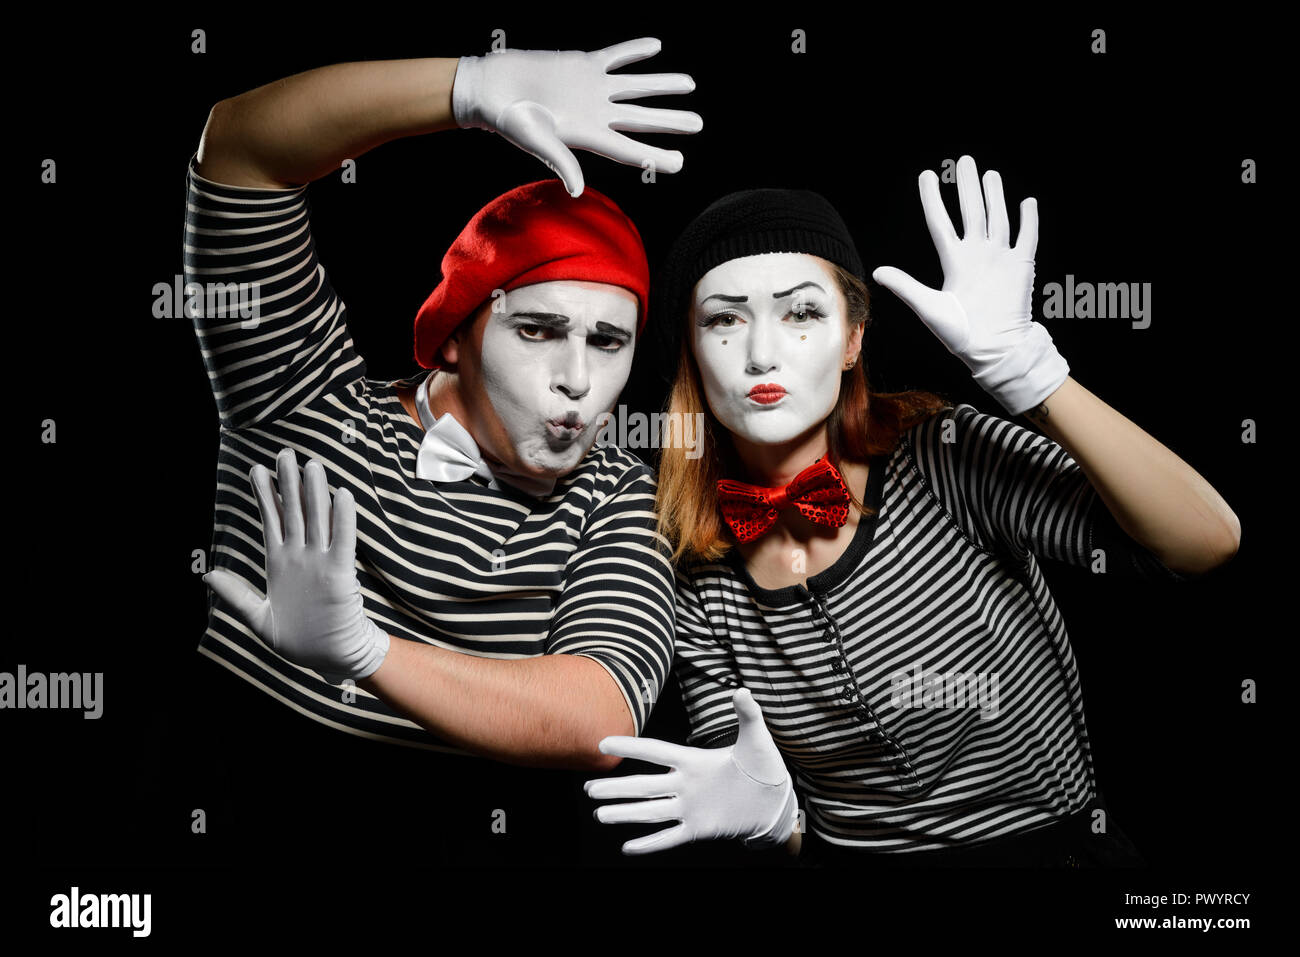 Funny mime artists on black - Stock Image